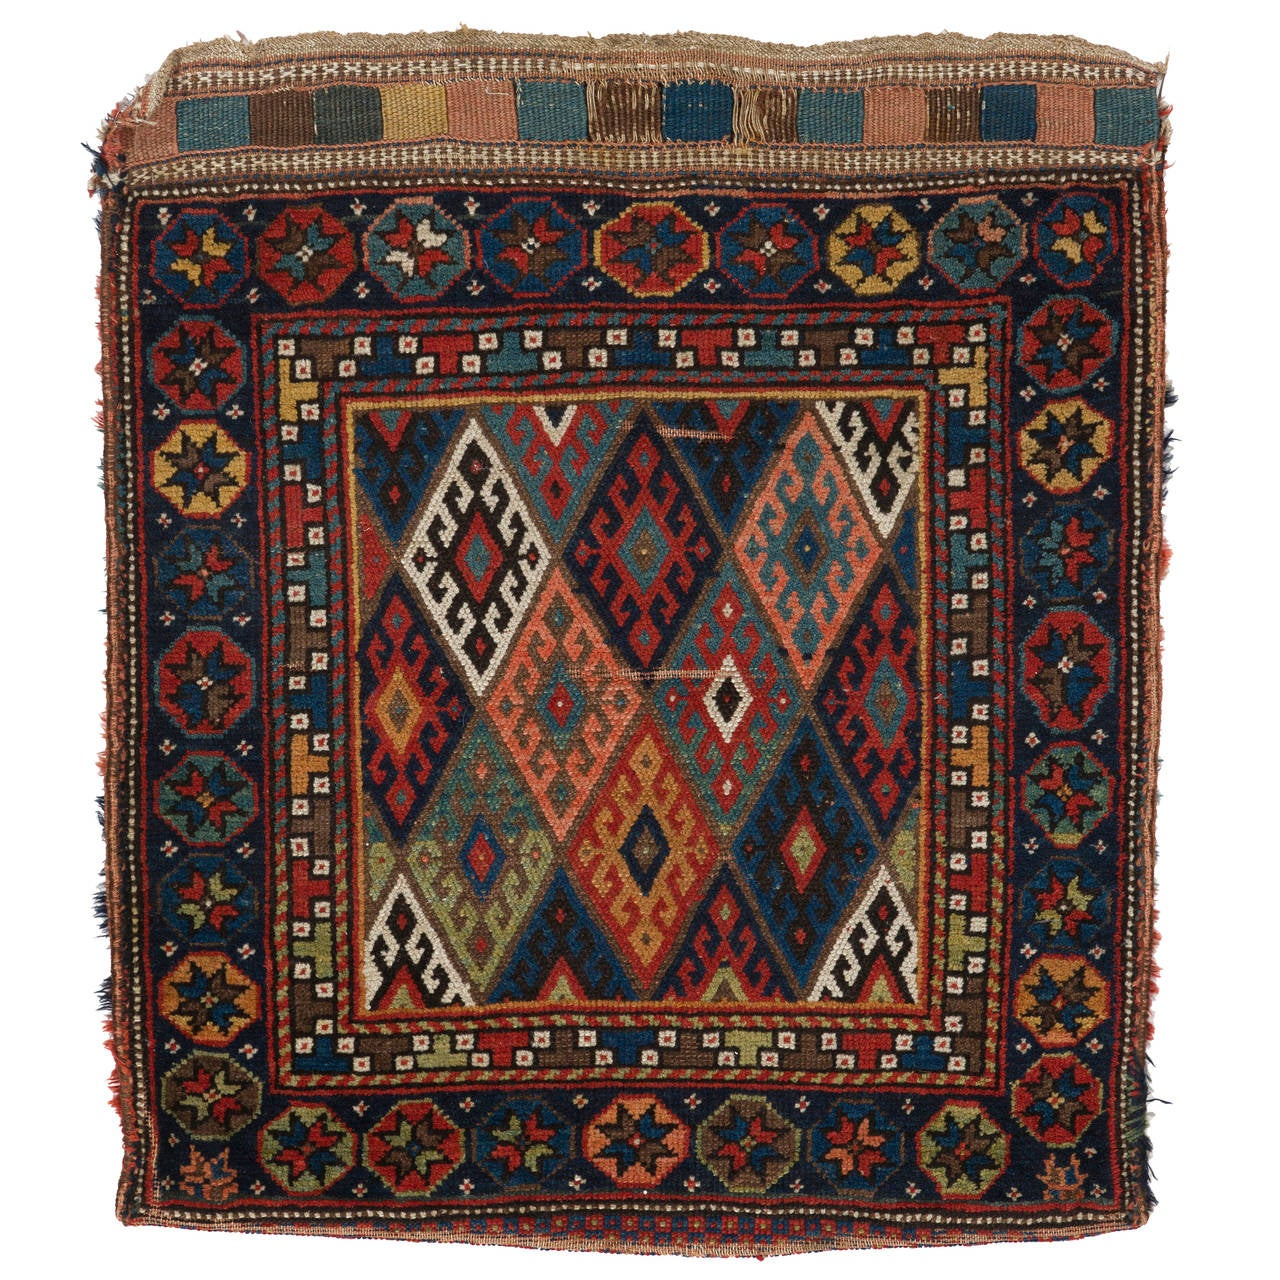 Antique Persian Tribal Cushion Cover For Sale At 1stdibs